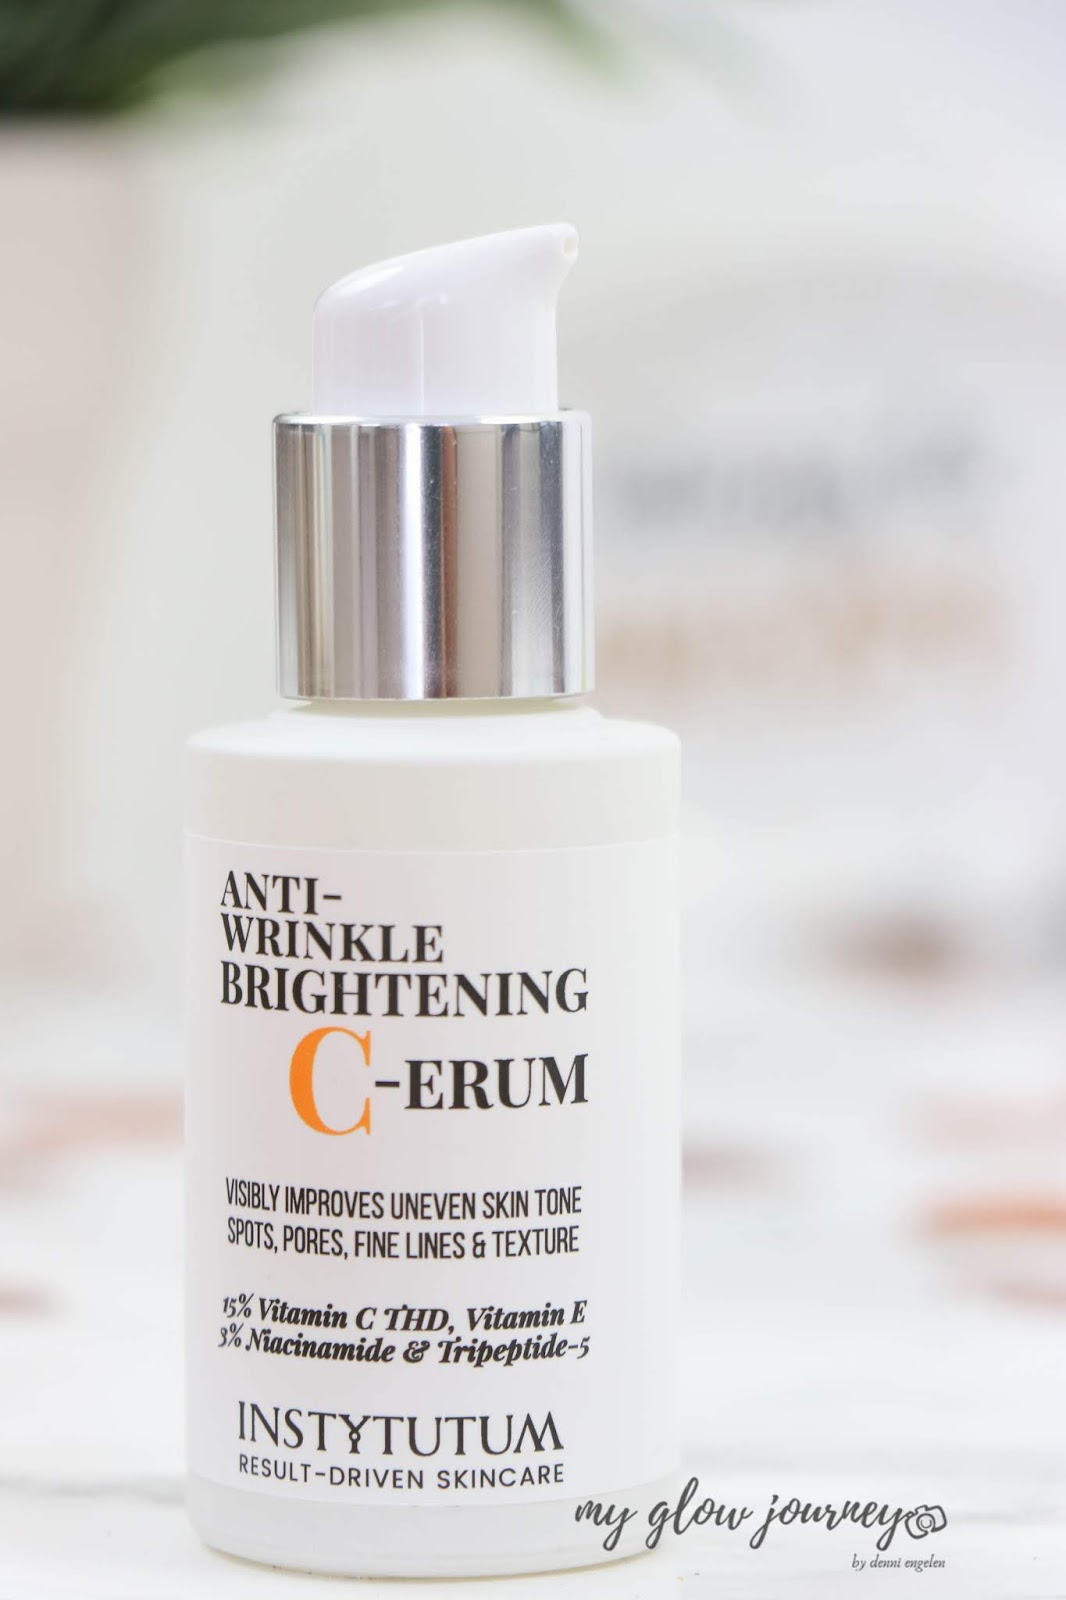 Get your glow back with ANTI-WRINKLE BRIGHTENING C-ERUM